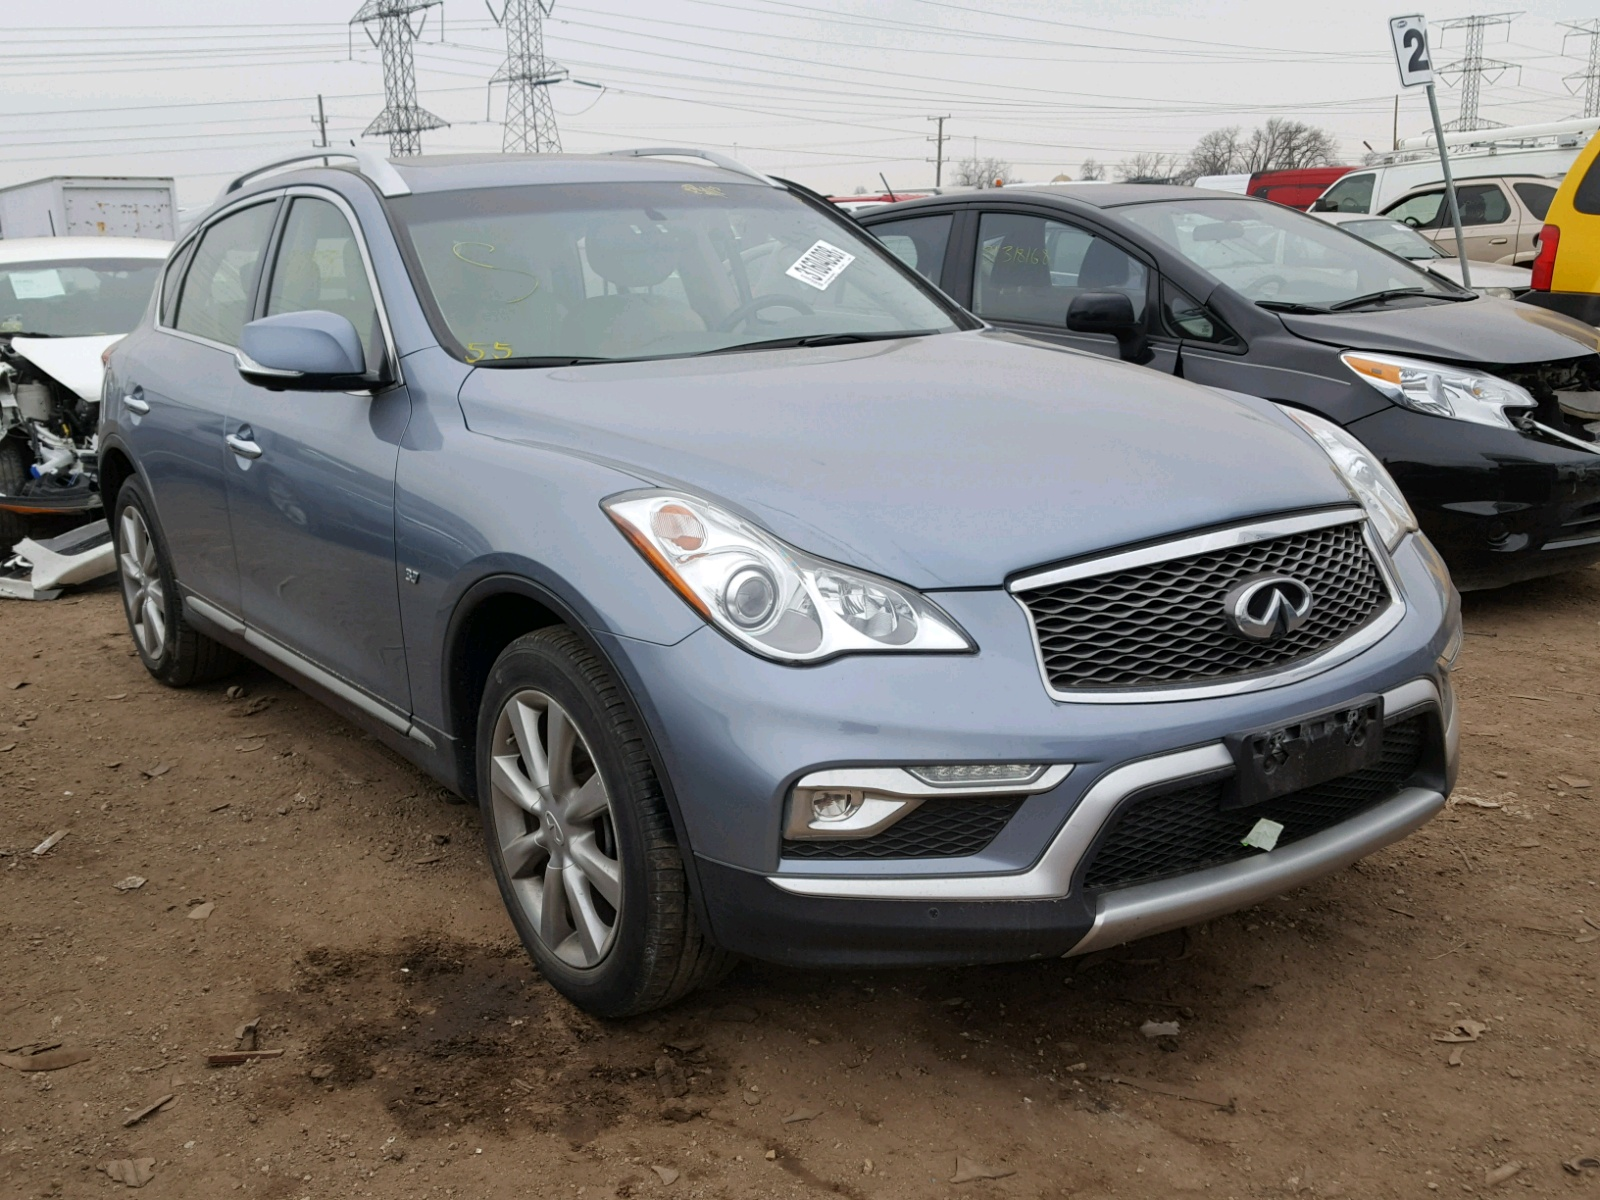 newly for debuts with los new photo engine variable images trick autonomous ahead sale article and show infinity la infiniti of angeles auto semi